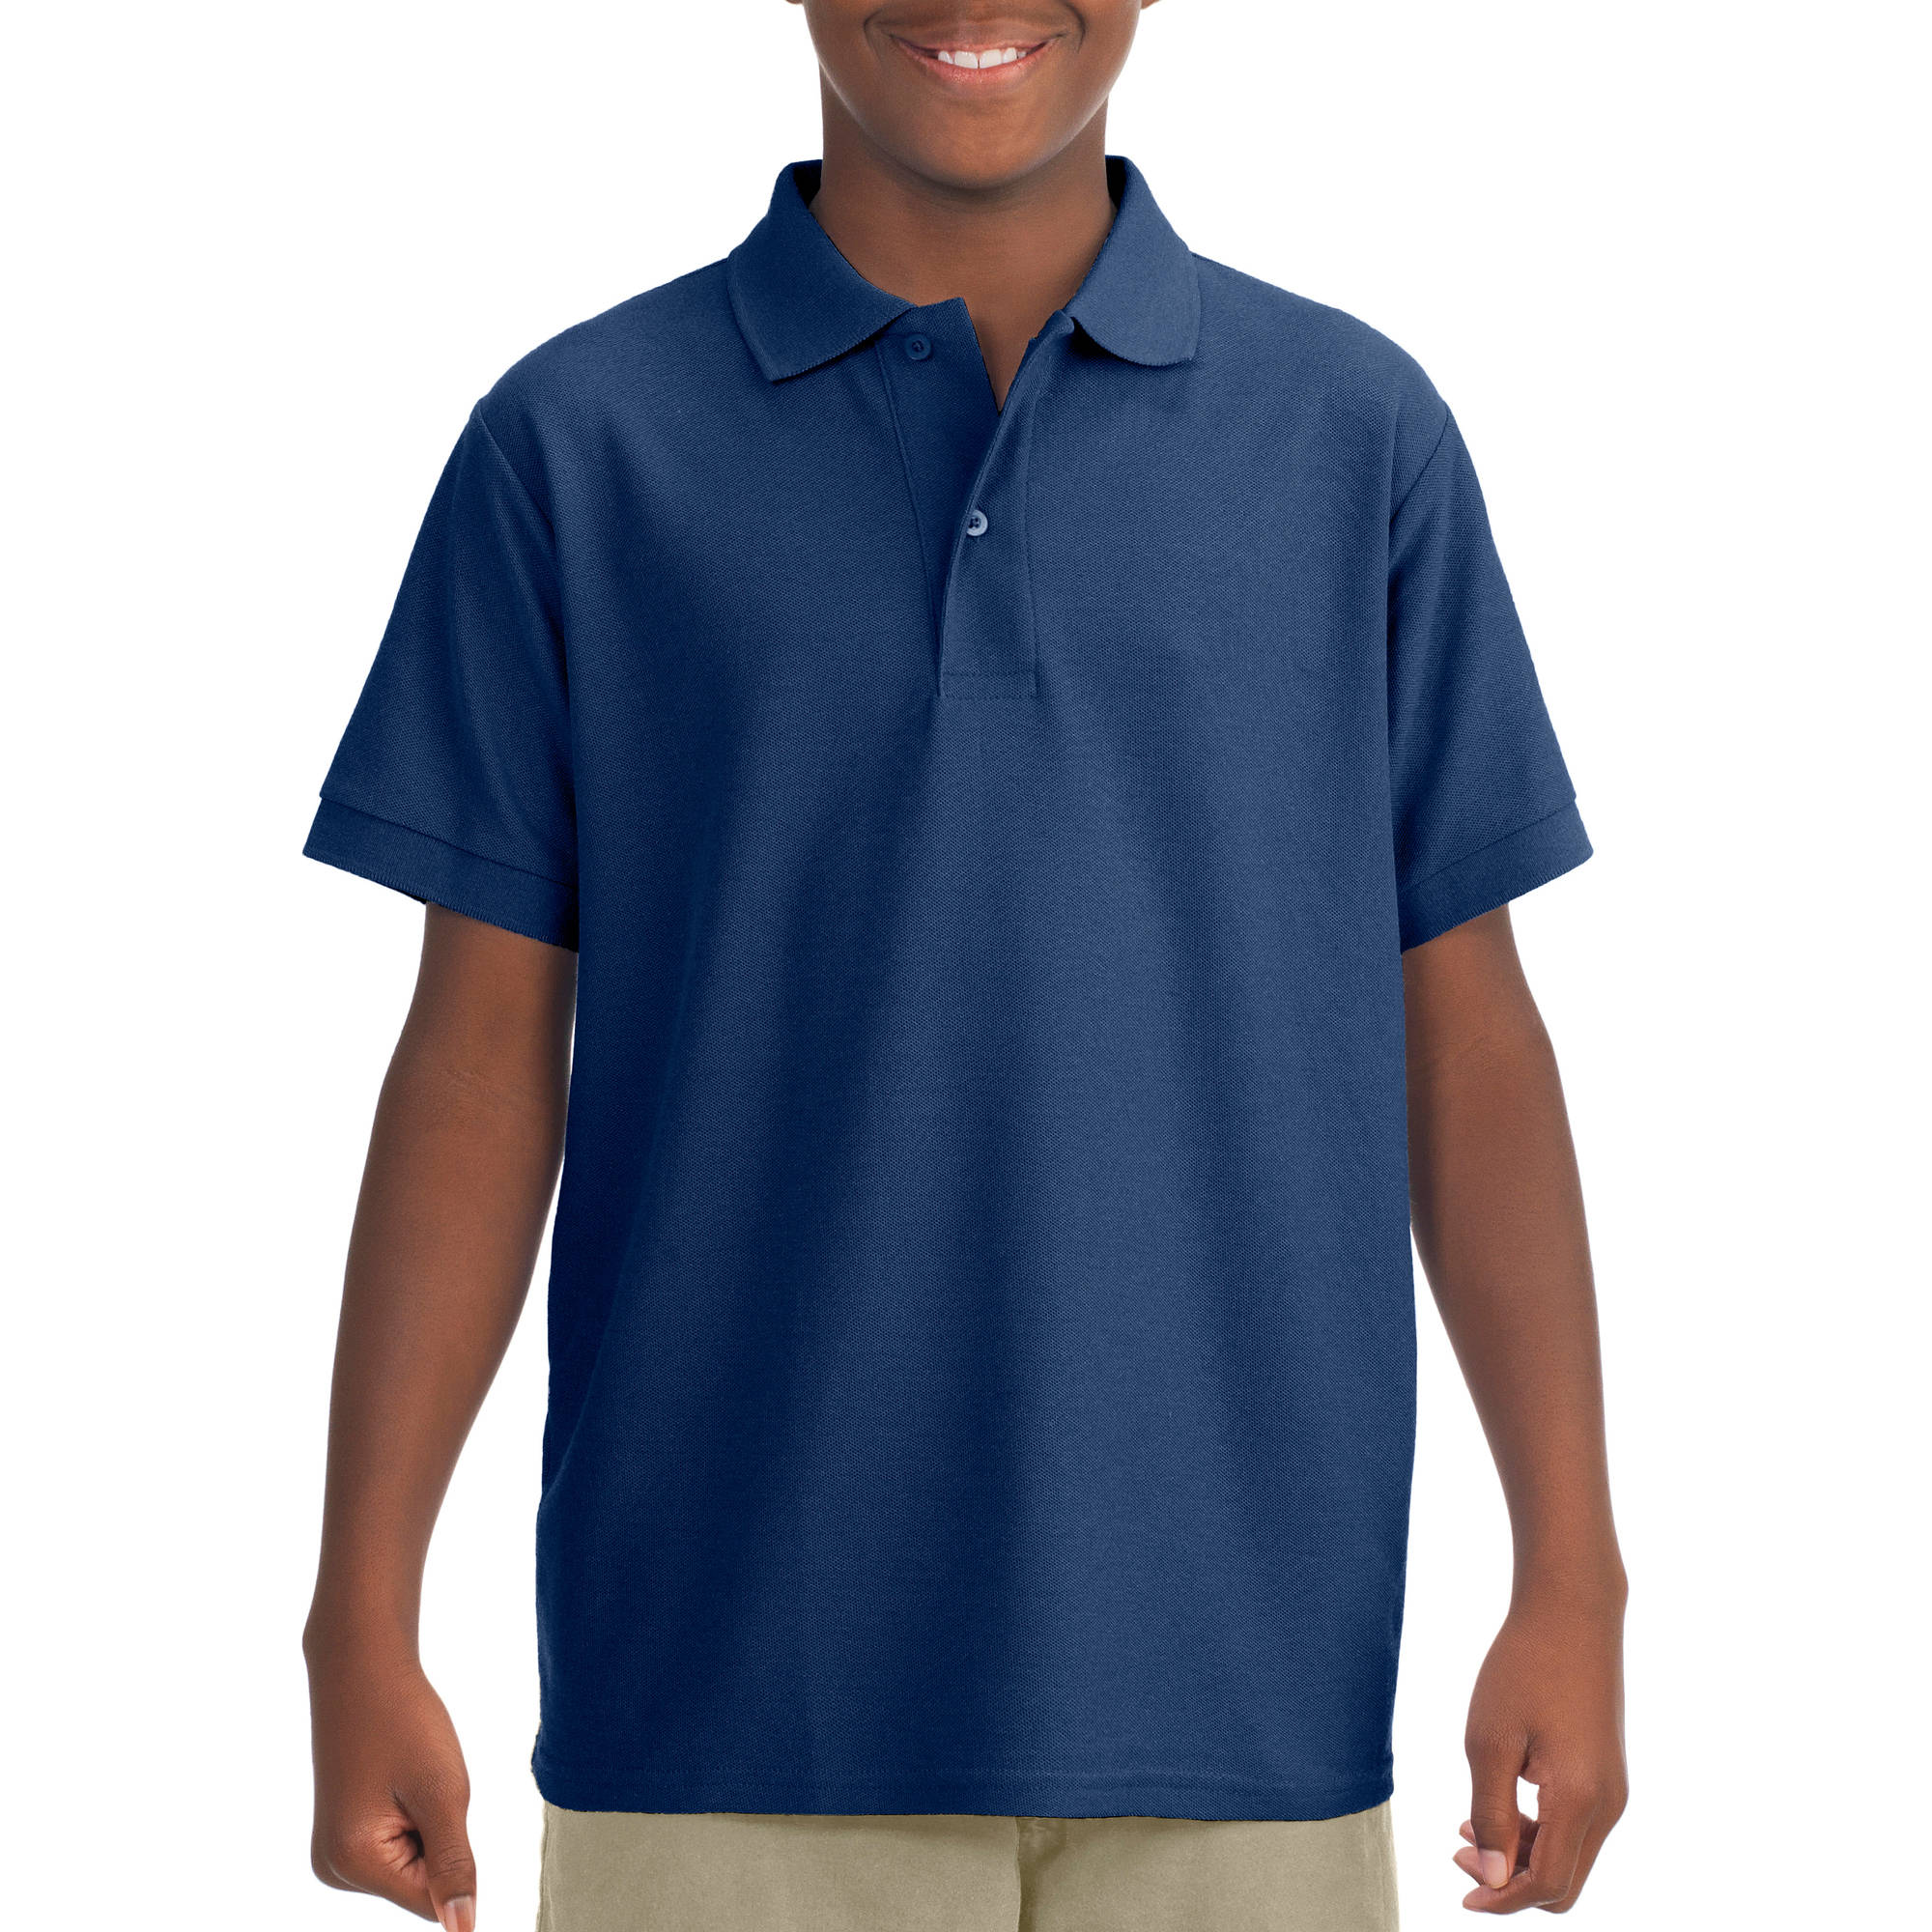 JERZEES Boys' Short Sleeve Wrinkle Resistant Performance Polo Shirt